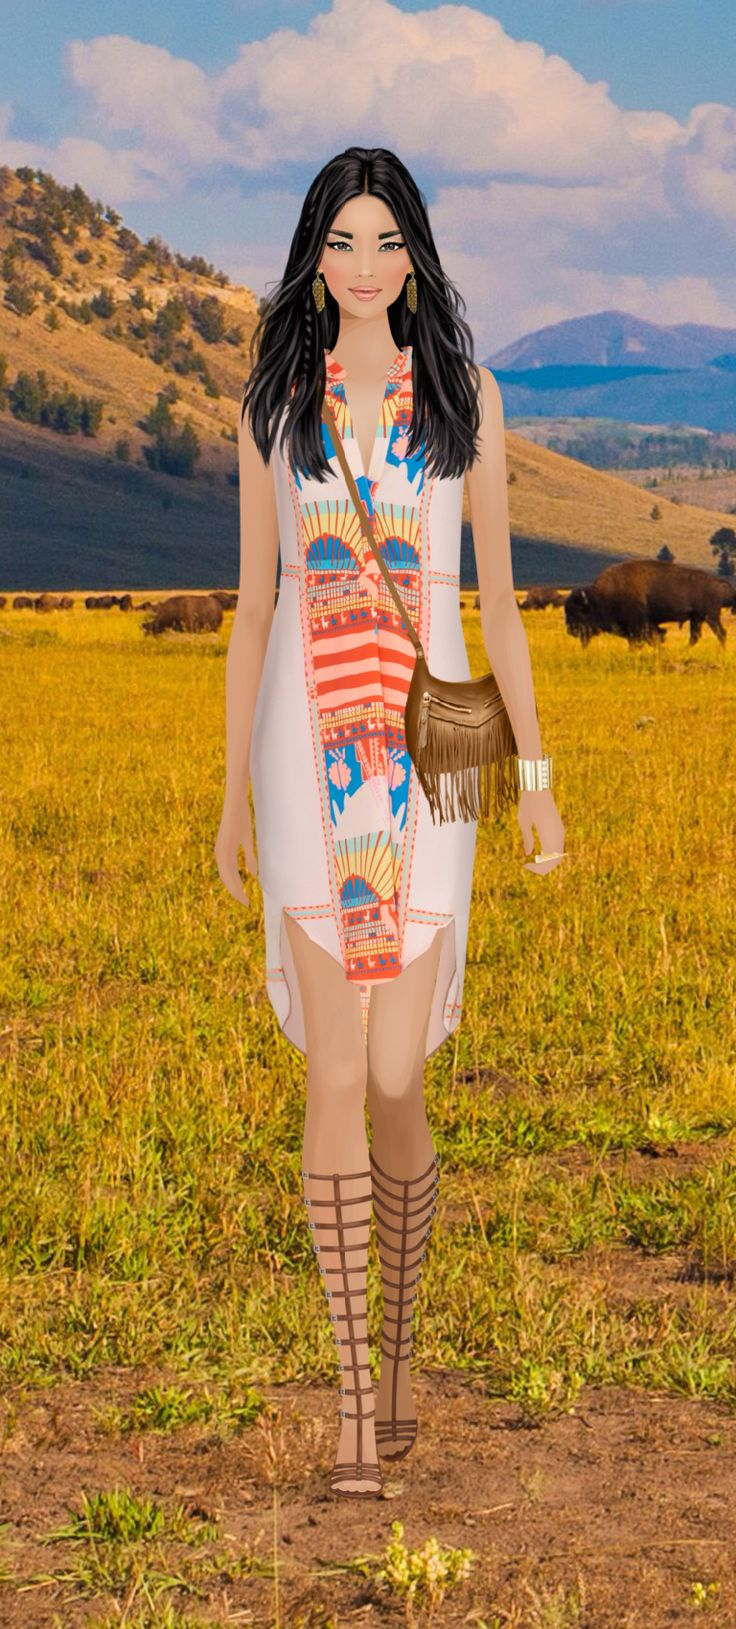 Covet Fashion Game Pocahontas